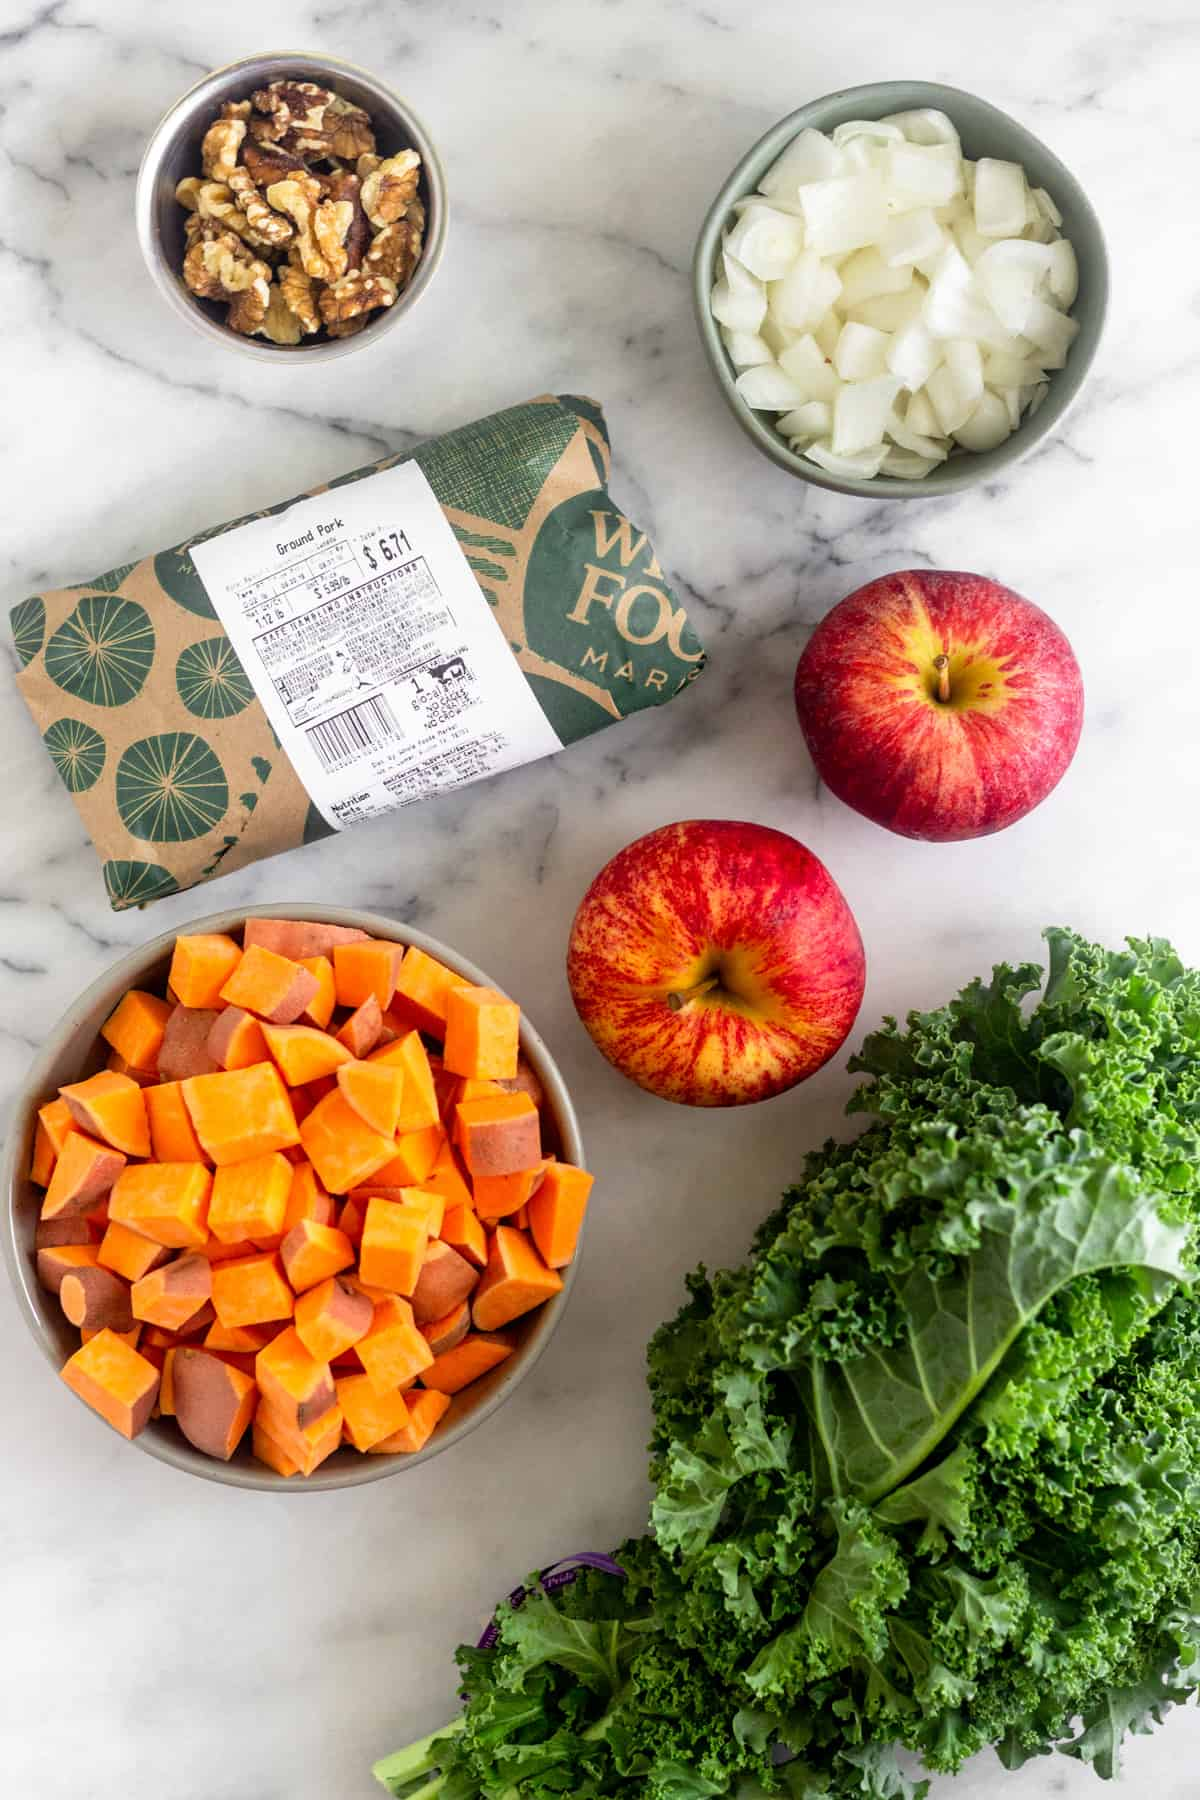 White counter with a small bowl of walnuts, bowl of diced onions, 2 apples, bunch of kale, bowl of diced sweet potatoes, and a package of ground pork